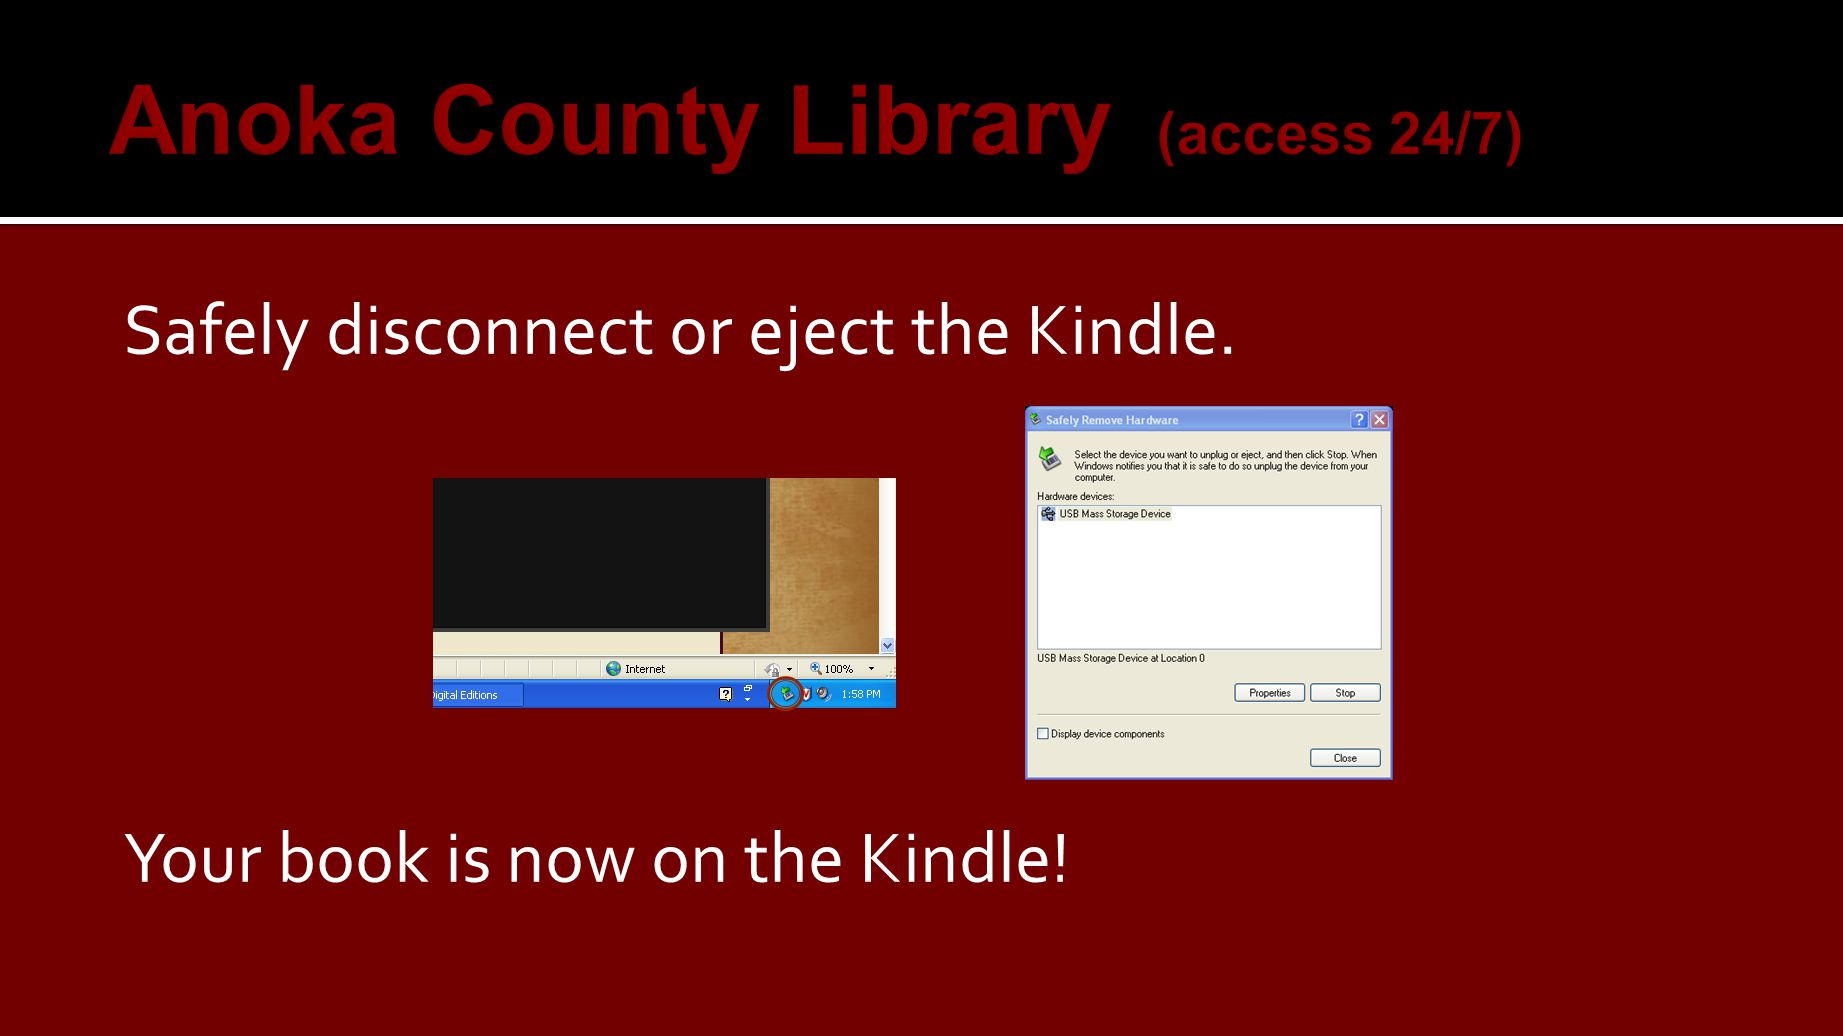 Safely disconnect or eject the Kindle. Your book is now on the Kindle!